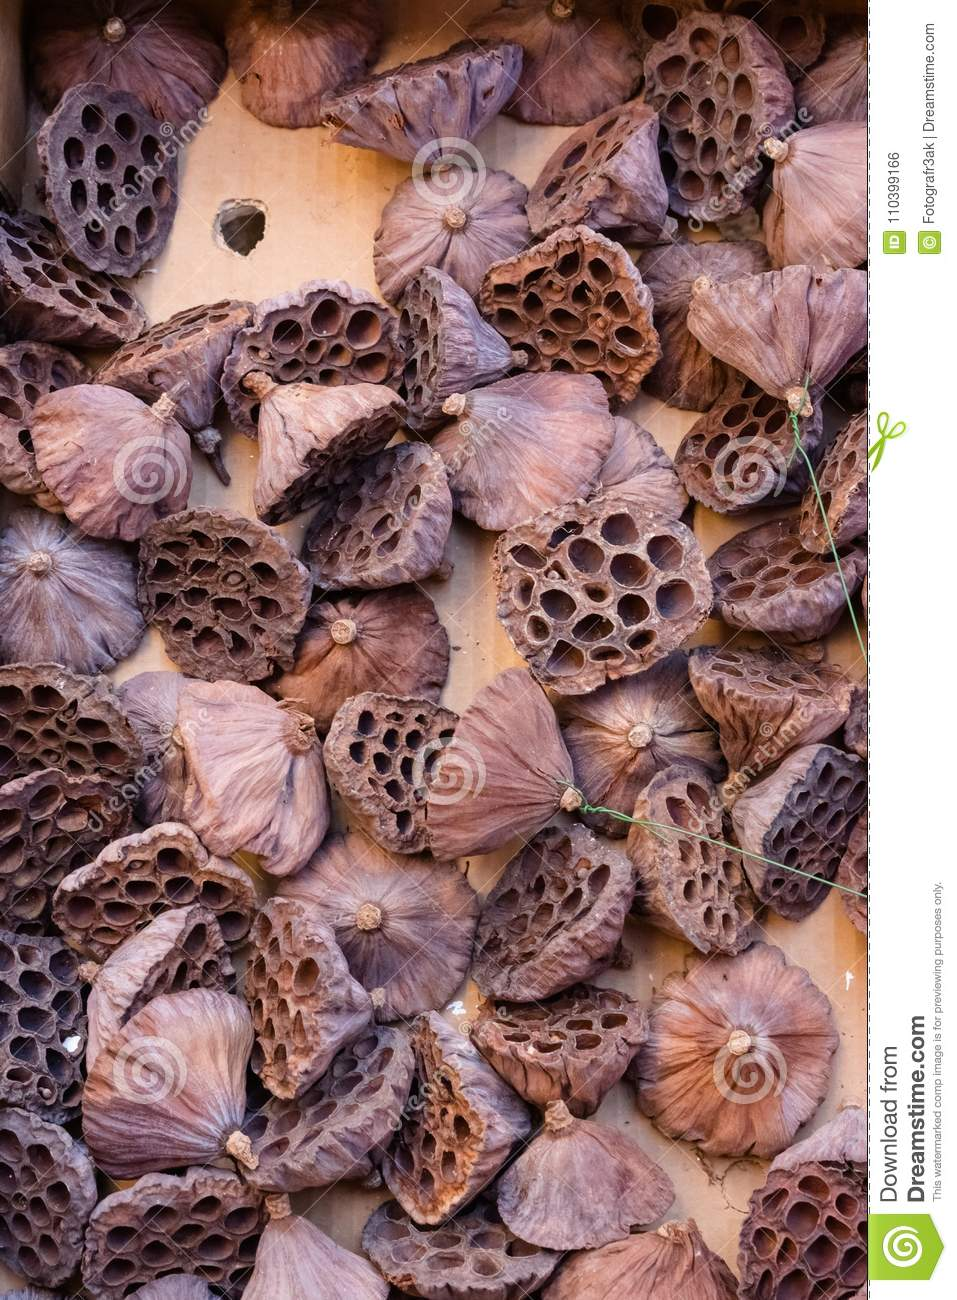 Brown Dried Seedless Lotus Flower Pods Stock Photo Image Of Acute